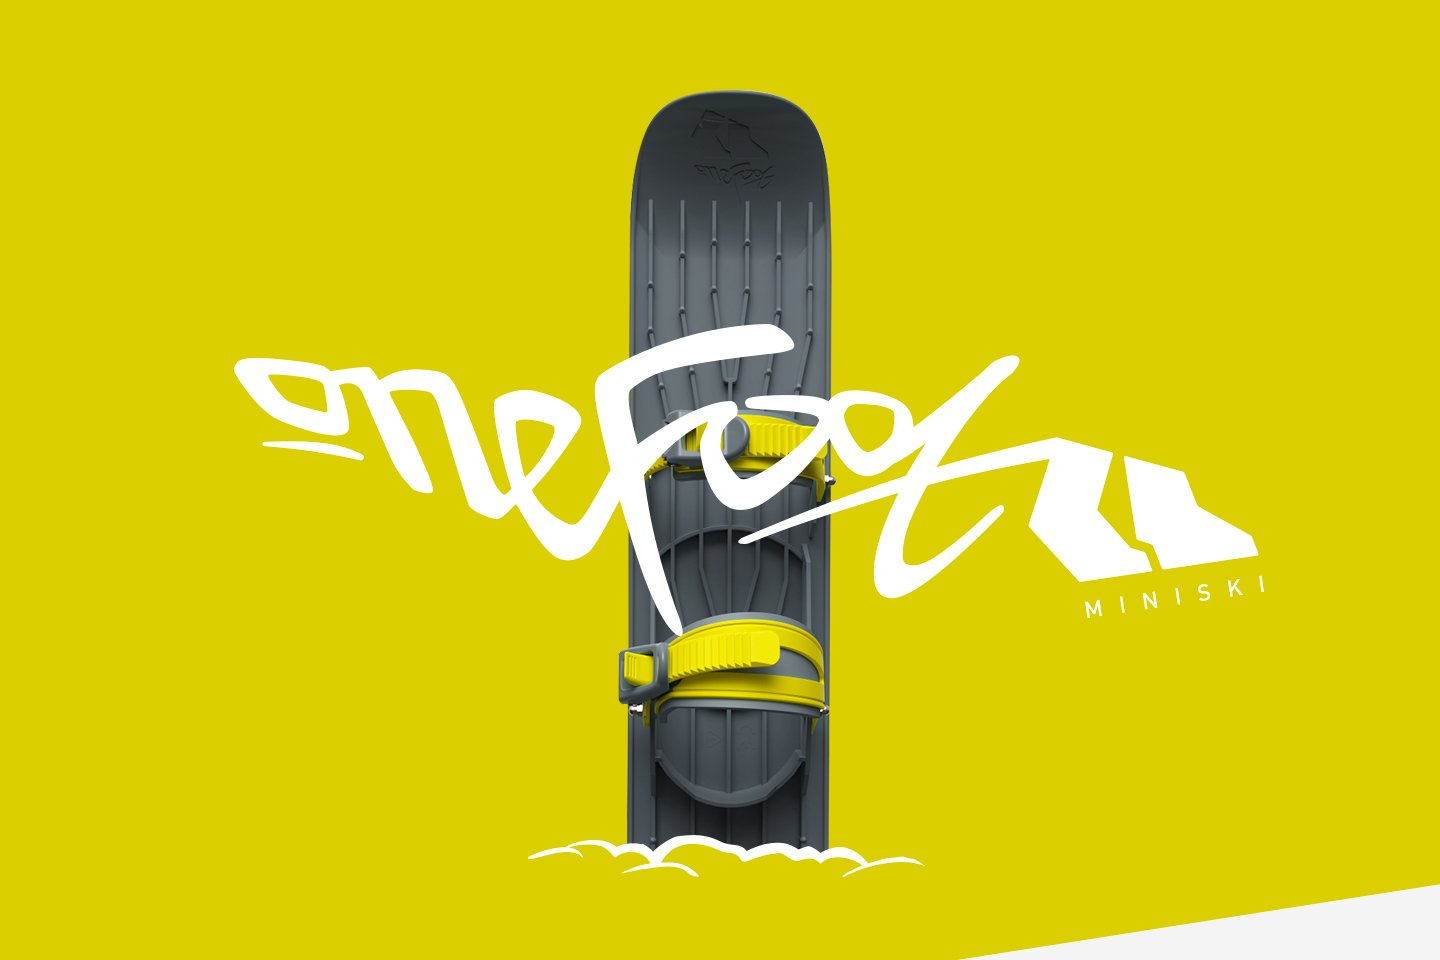 Onefoot cover photo